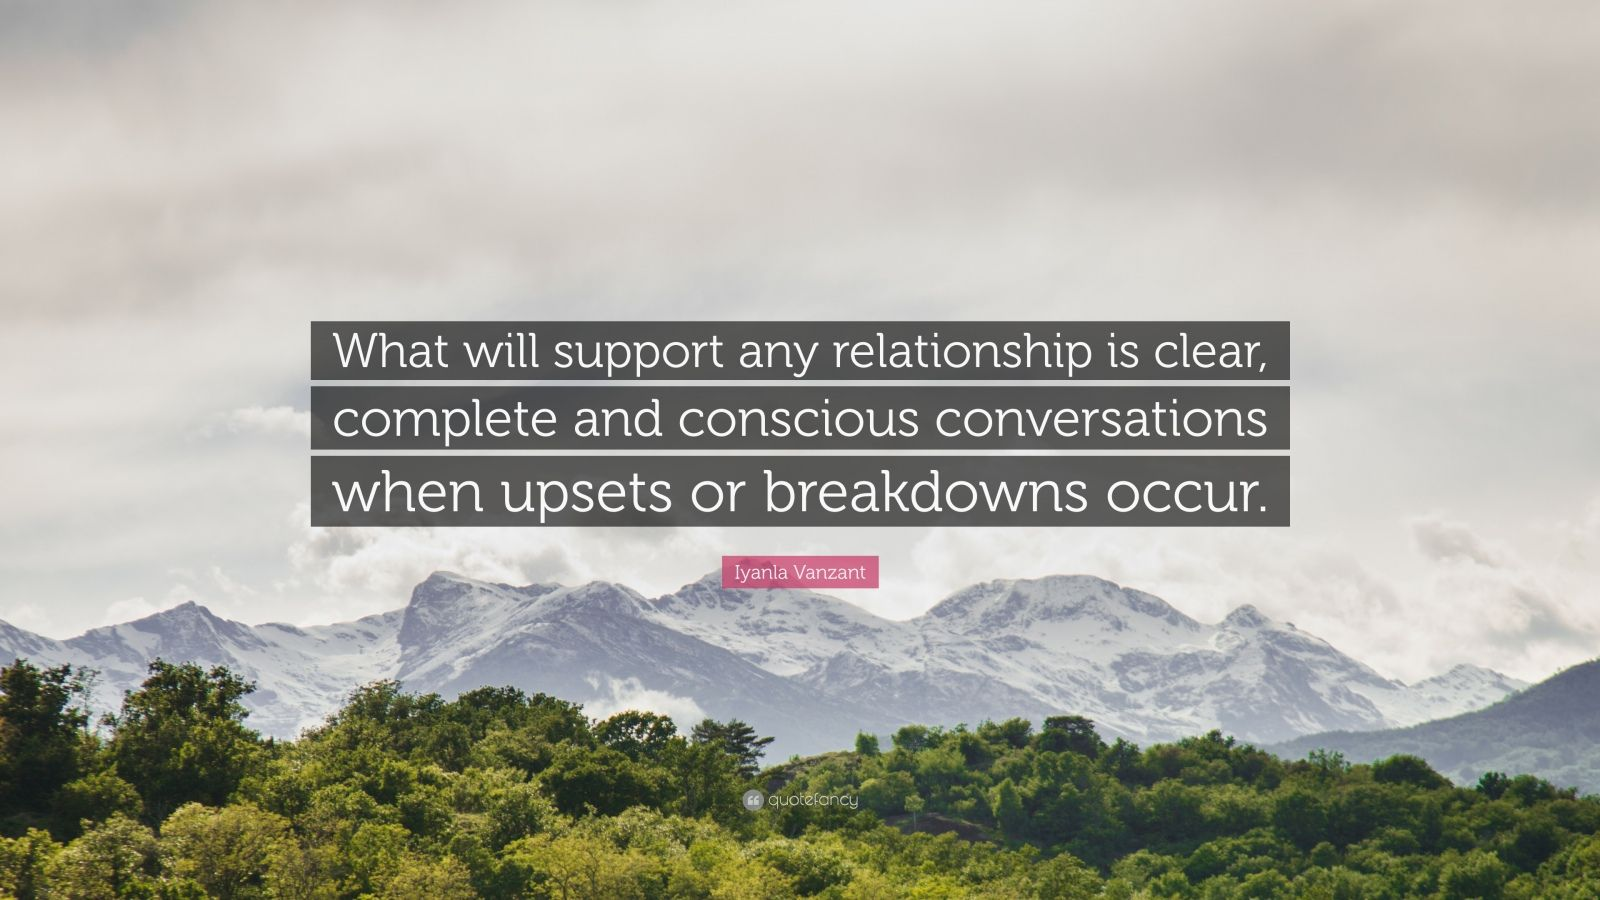 """Iyanla Vanzant Quote: """"What will support any relationship is clear, complete and conscious conversations when upsets or breakdowns occur."""""""